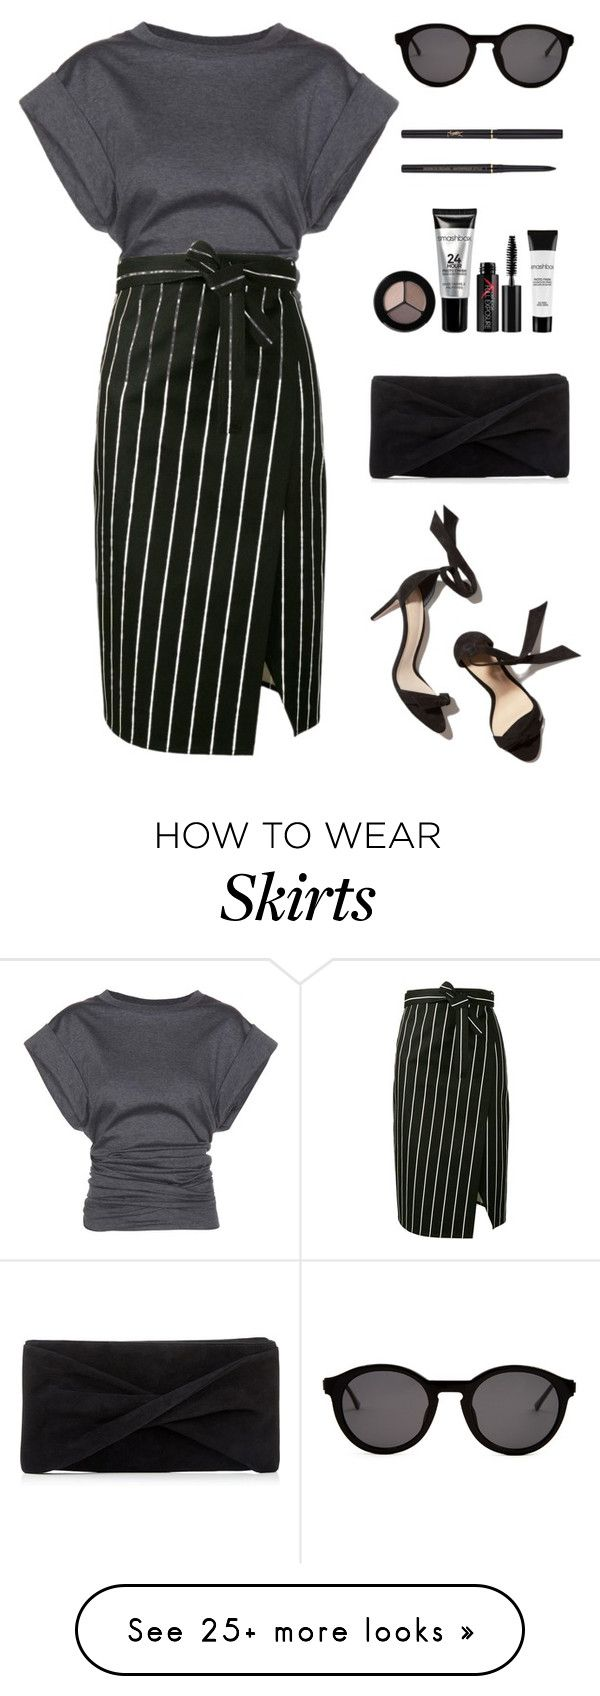 """Striped skirt"" by enamorado-dina on Polyvore featuring Smashbox, Isabel Marant, Balenciaga, Reiss, Thierry Lasry and Yves Saint Laurent"